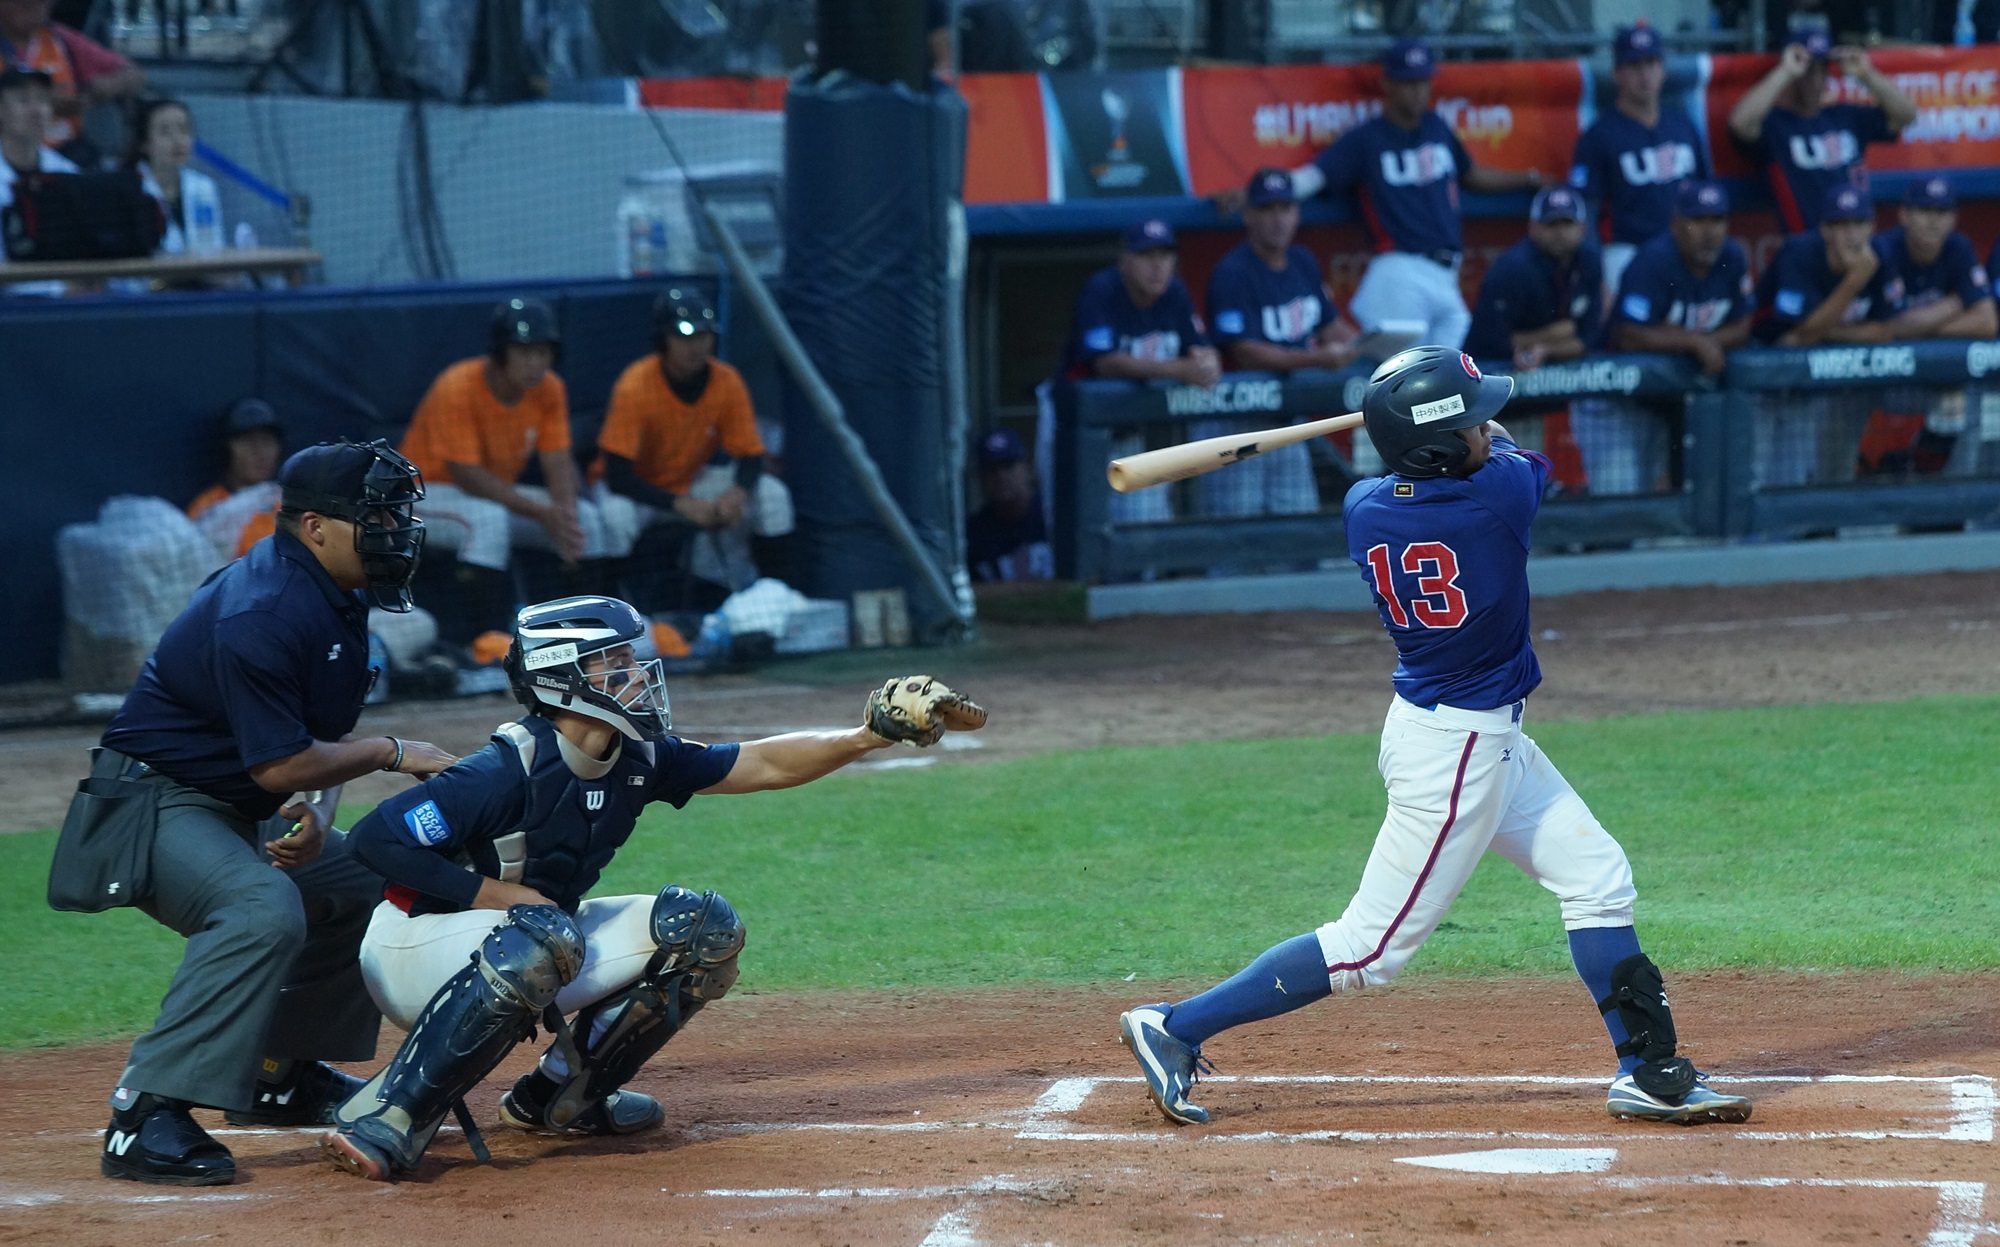 Wang Shun Ho hit a triple and then scored the first run for Chinese Taipei